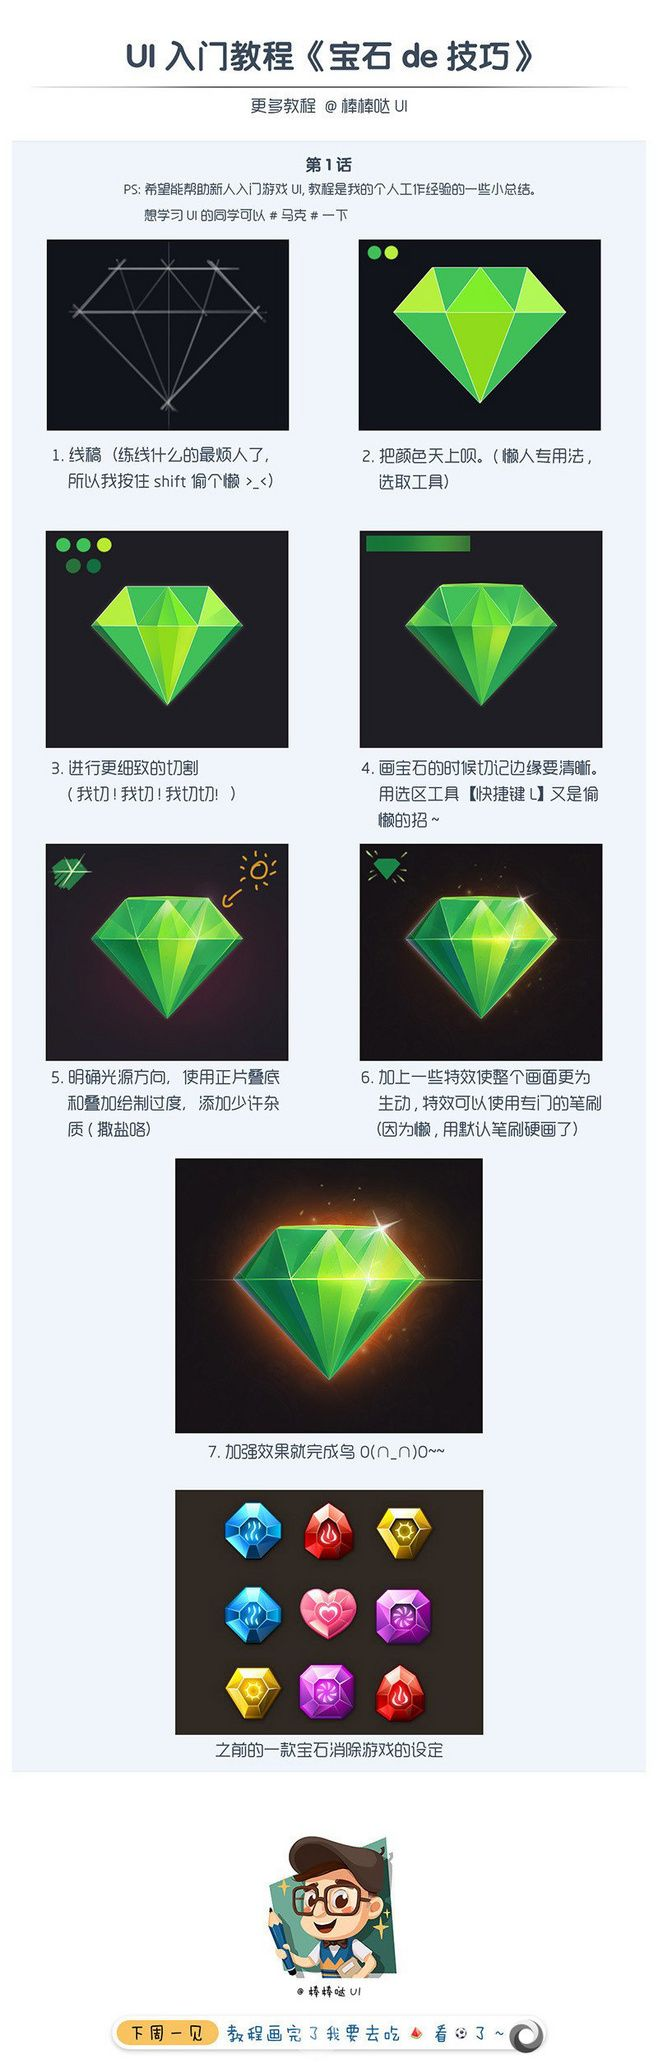 游戏UI入门教程第一篇 - 图翼网(TU... How to illustrate a gem or crystal painting drawing resource tool how to tutorial instructions | Create your own roleplaying game material w/ RPG Bard: www.rpgbard.com | Writing inspiration for Dungeons and Dragons DND D&D Pathfinder PFRPG Warhammer 40k Star Wars Shadowrun Call of Cthulhu Lord of the Rings LoTR + d20 fantasy science fiction scifi horror design | Not our art: click artwork for source